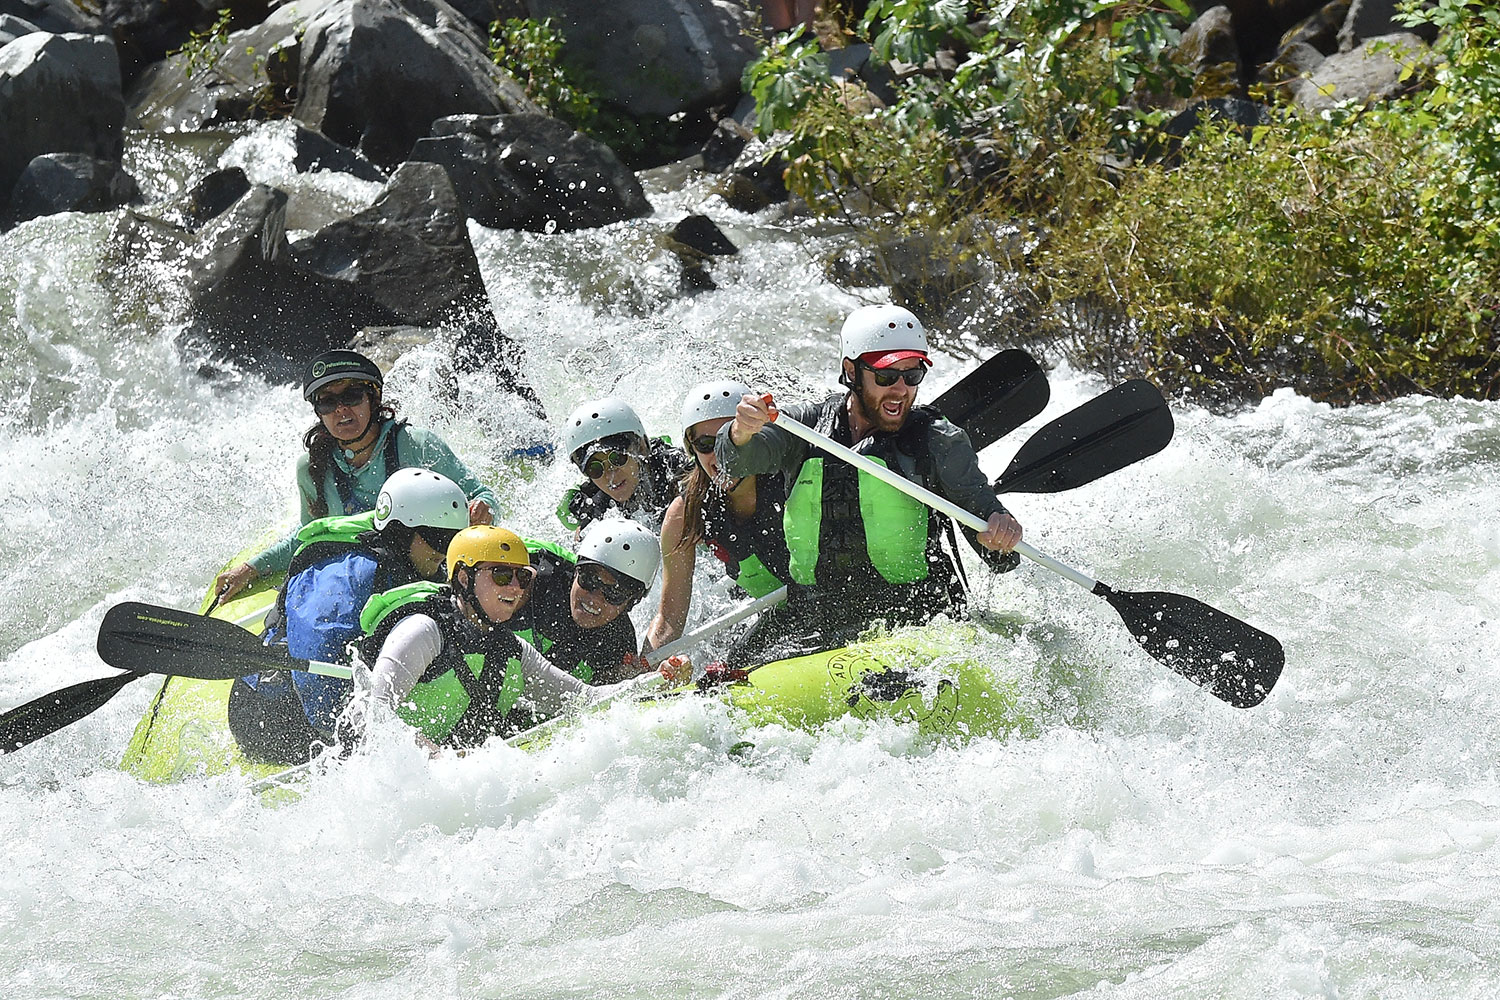 The team goes white-water rafting on the annual Huckberry vacation.